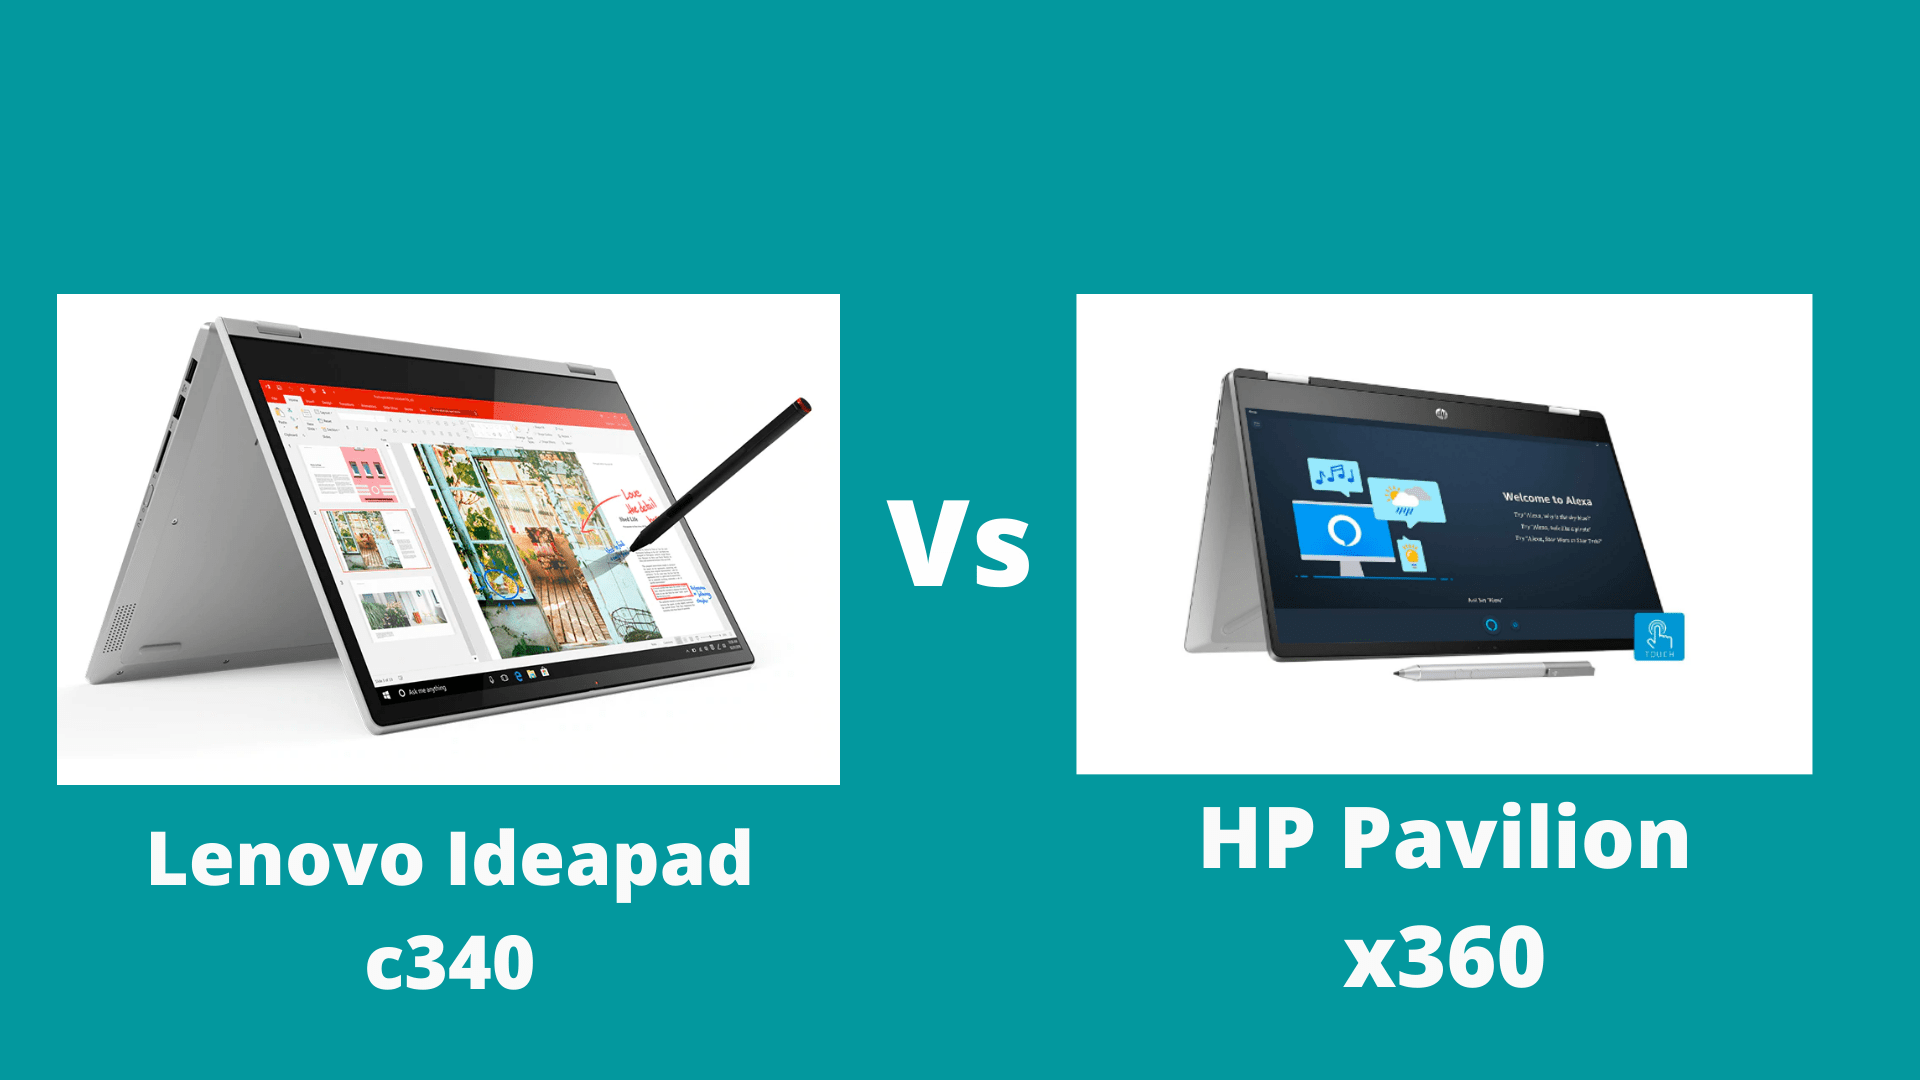 HP Pavilion x360 vs Lenovo Ideapad c340 (2020)